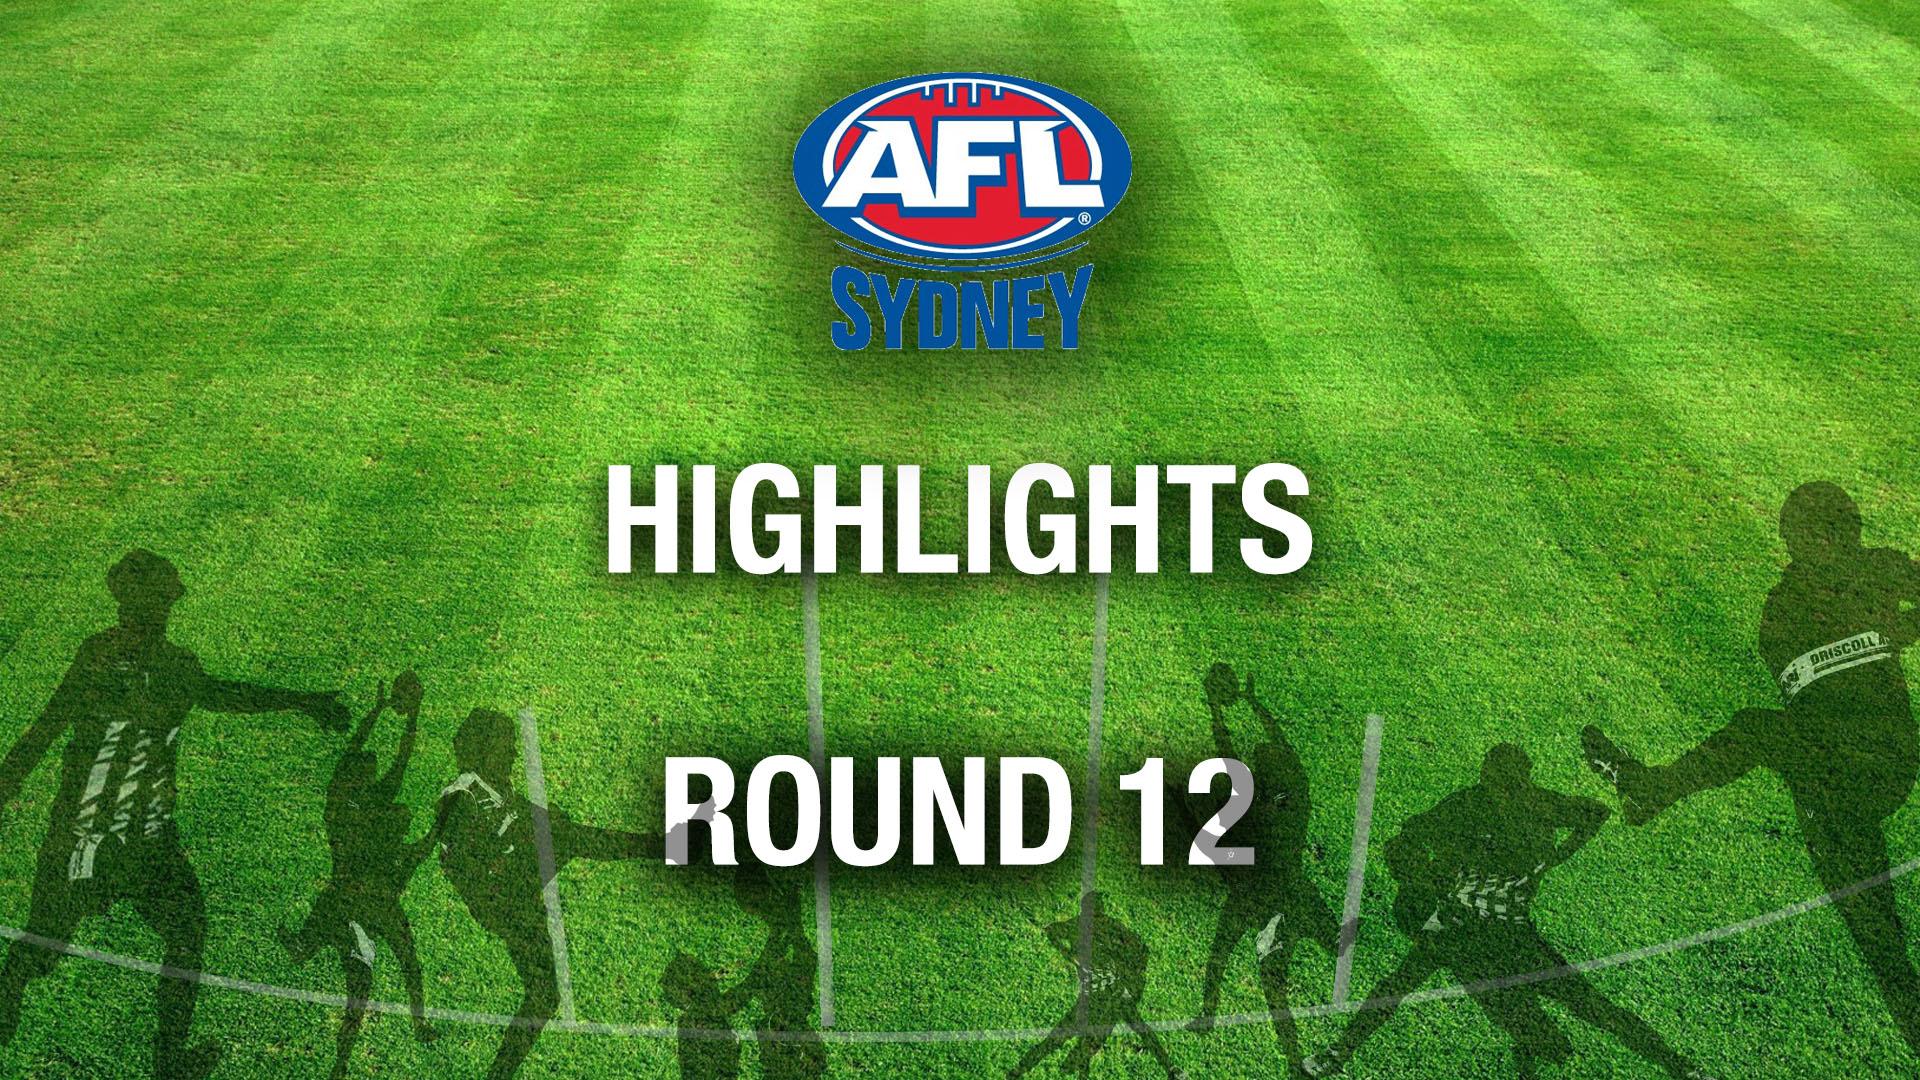 AFL SYDNEY 2018 RD12 HIGHLIGHTS